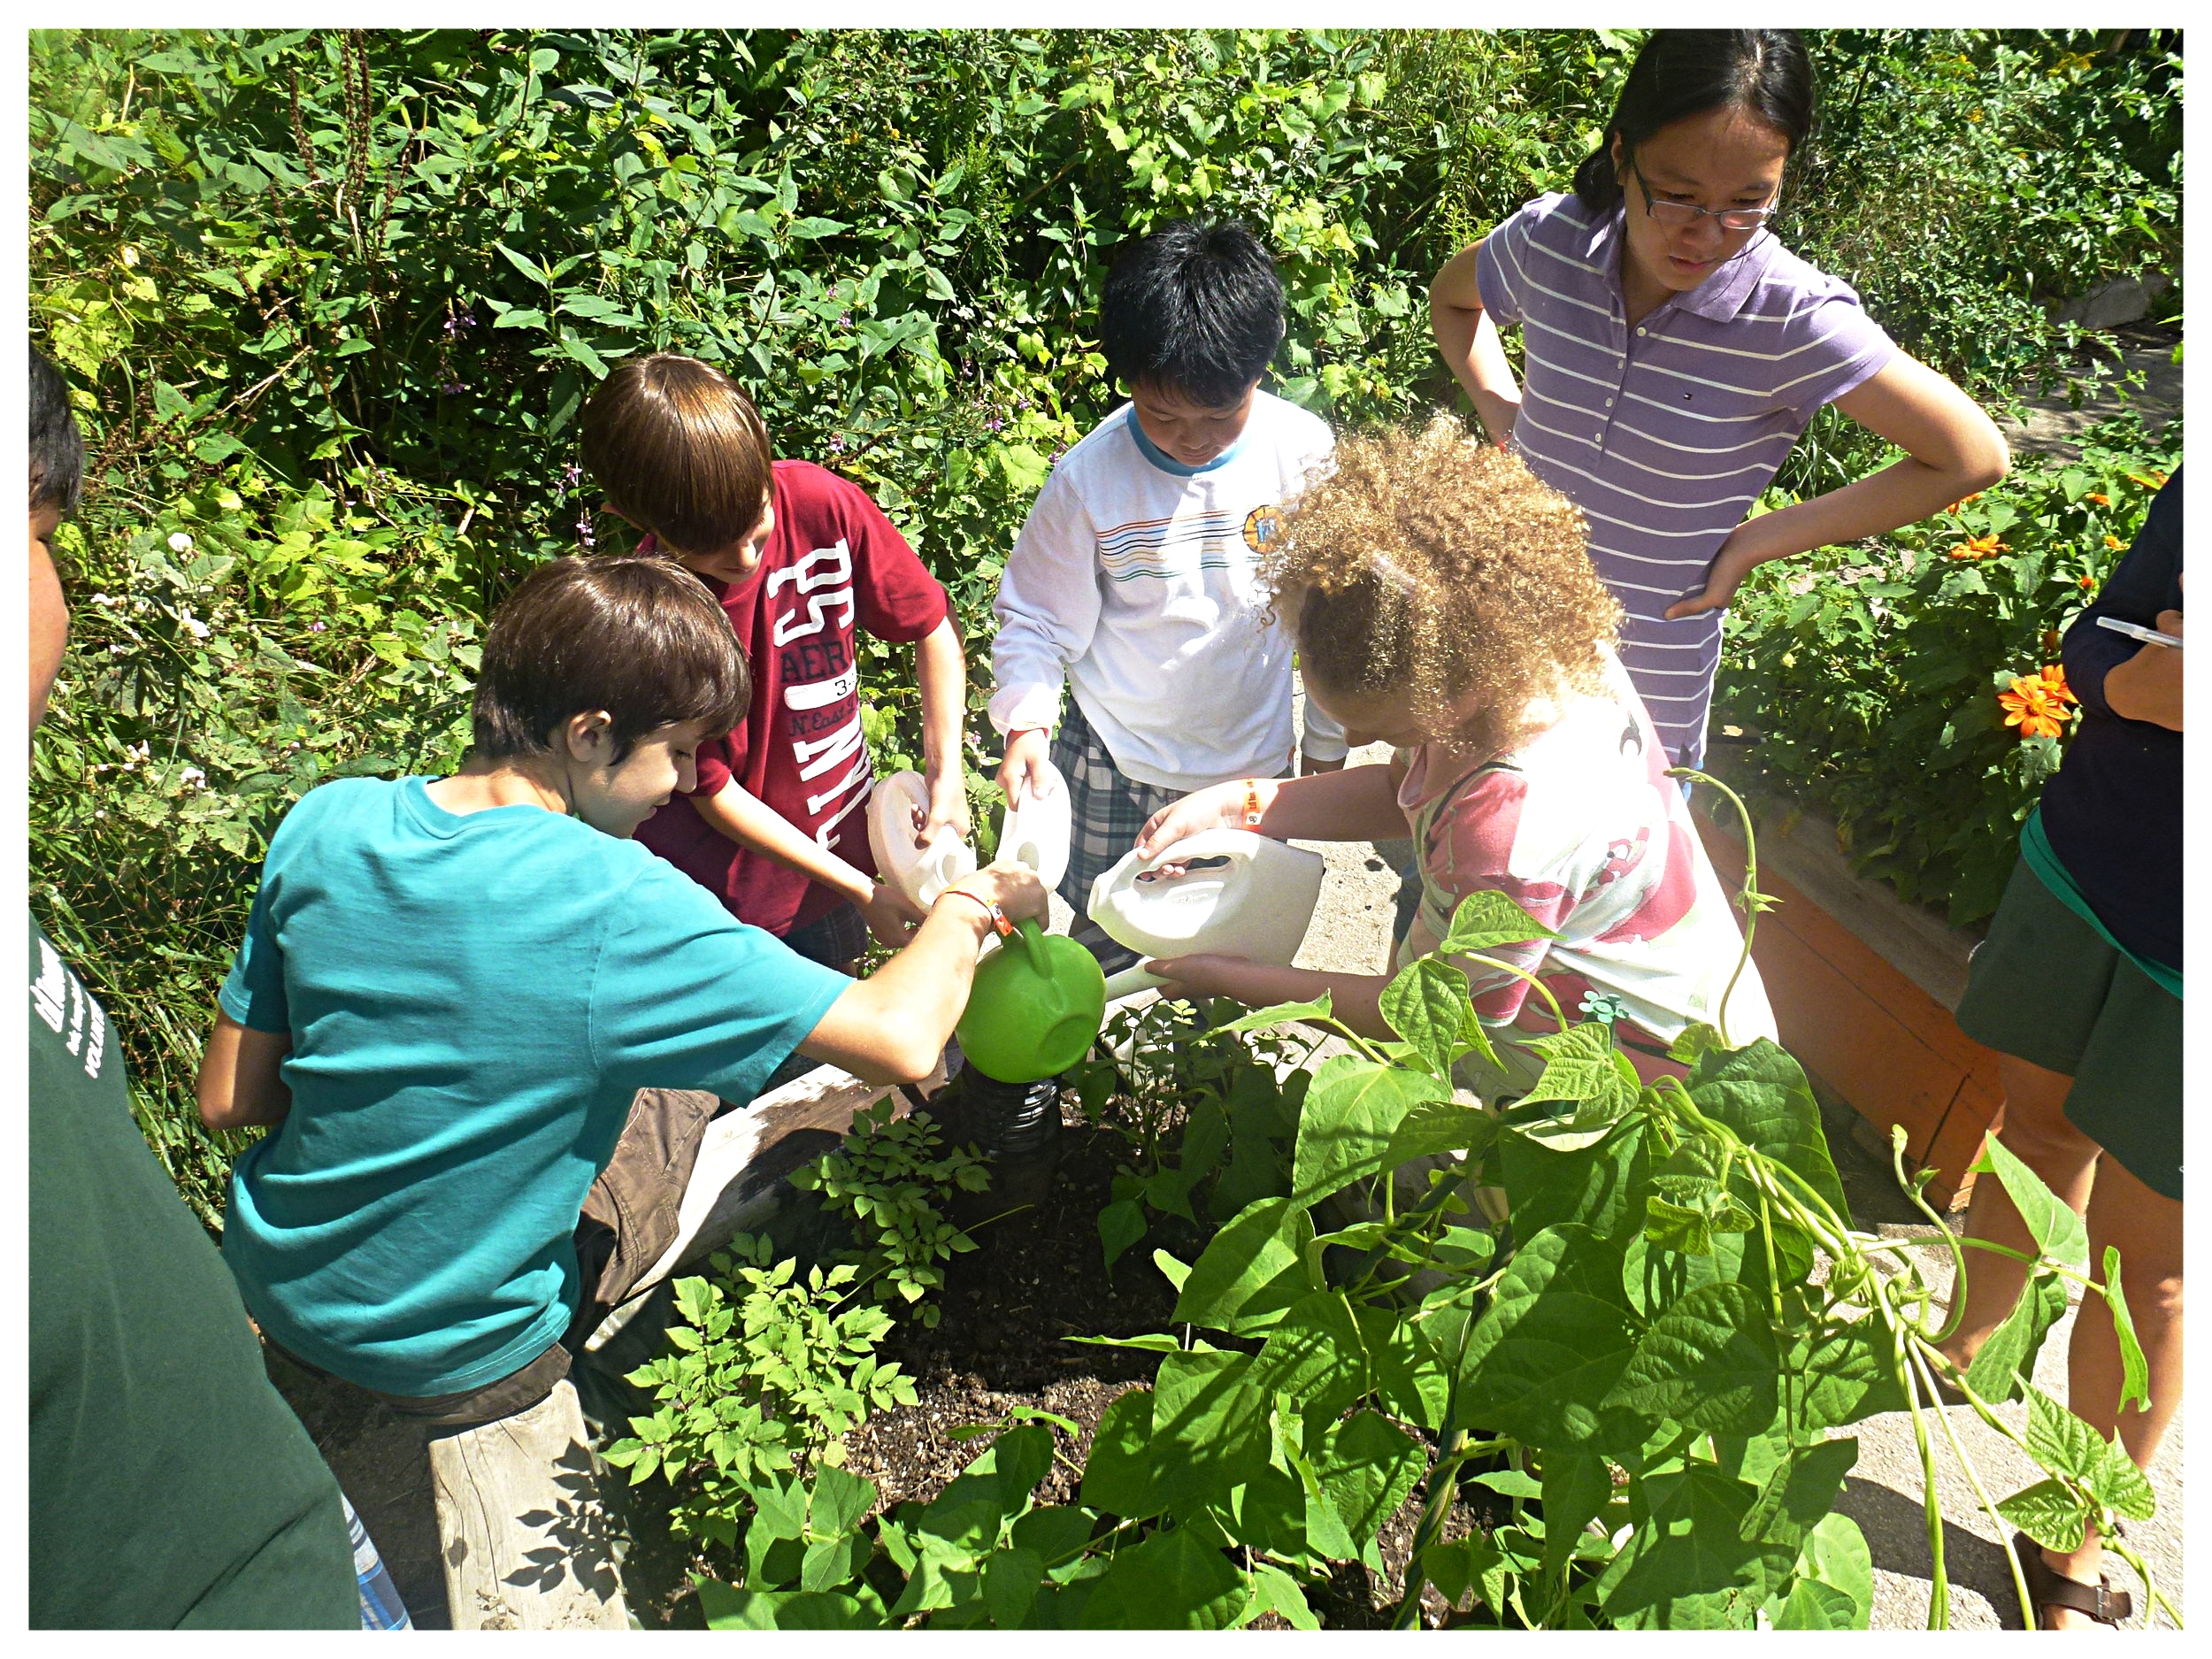 Kids in a community garden try out their SIP raised-bed that reduces watering needs and supports plant health.